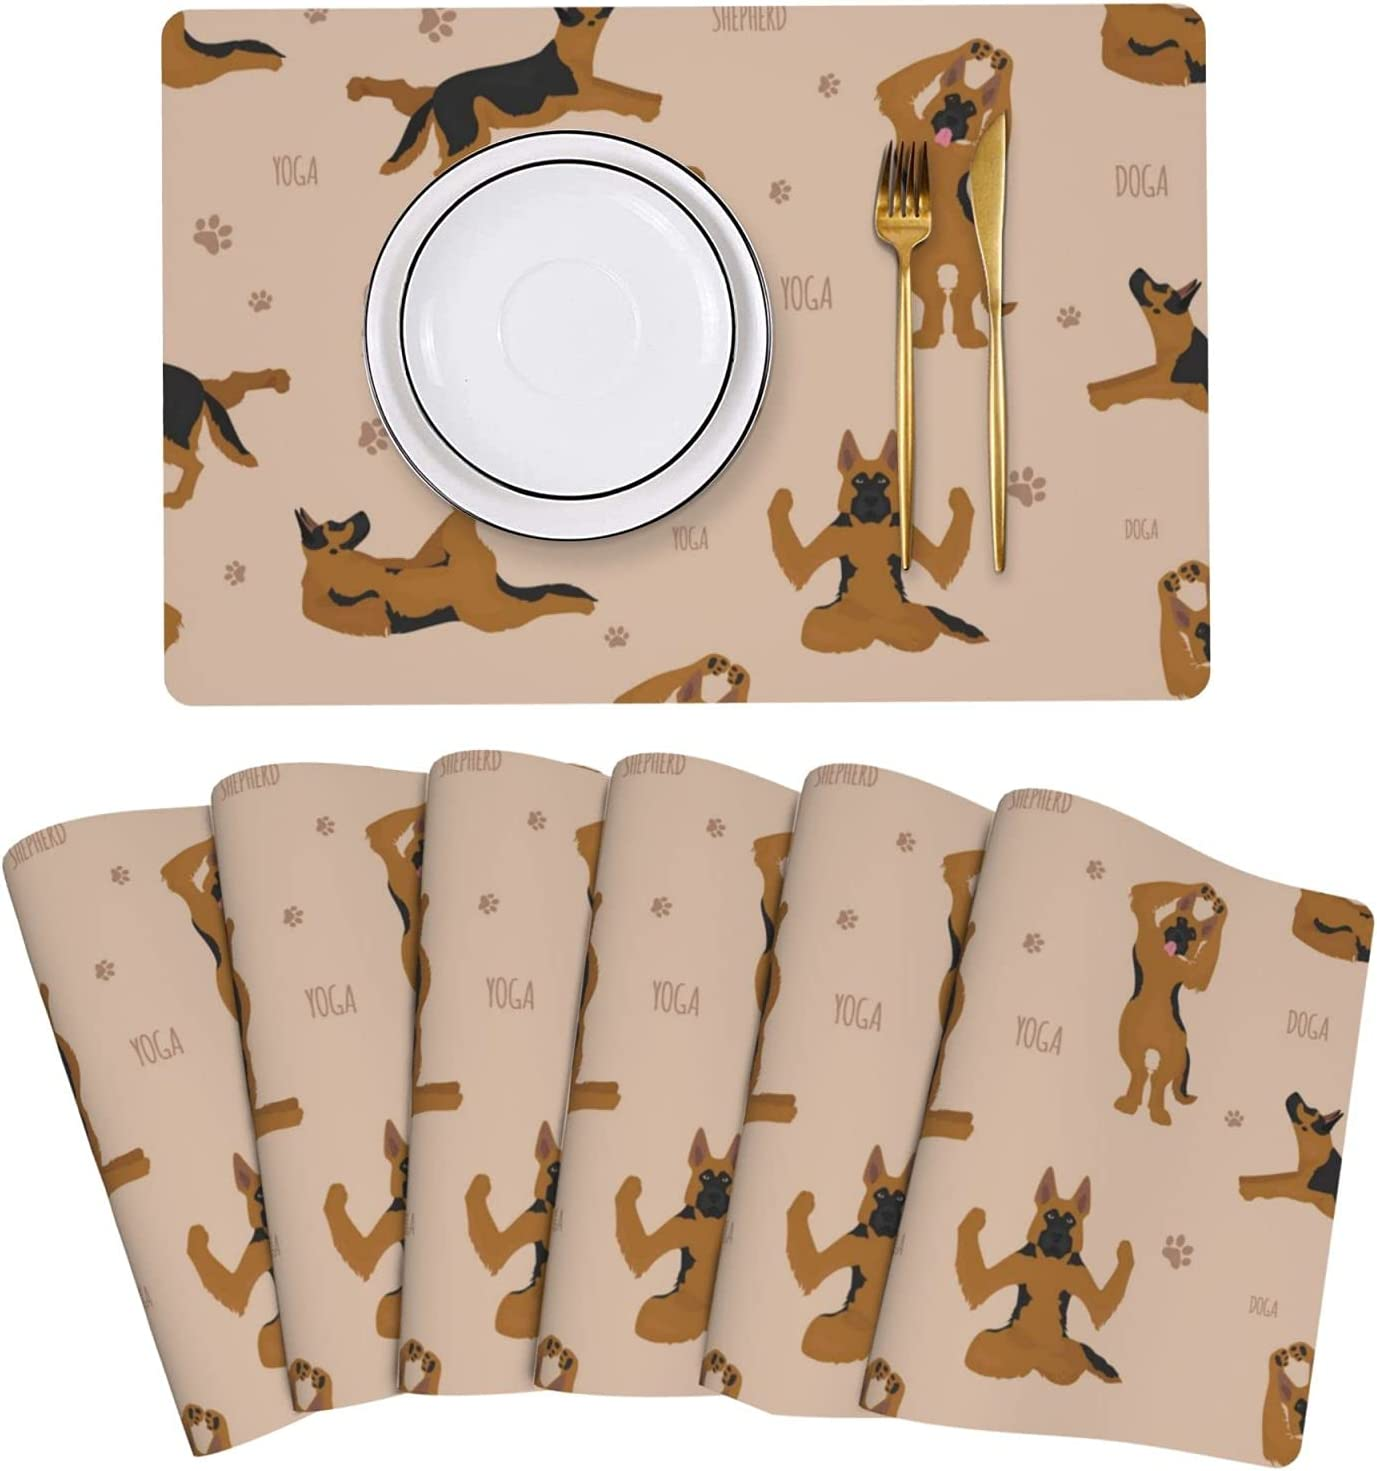 German Shepherd Yoga Poses low-pricing Placemat Leather 6 Mats Set Shipping included of Table